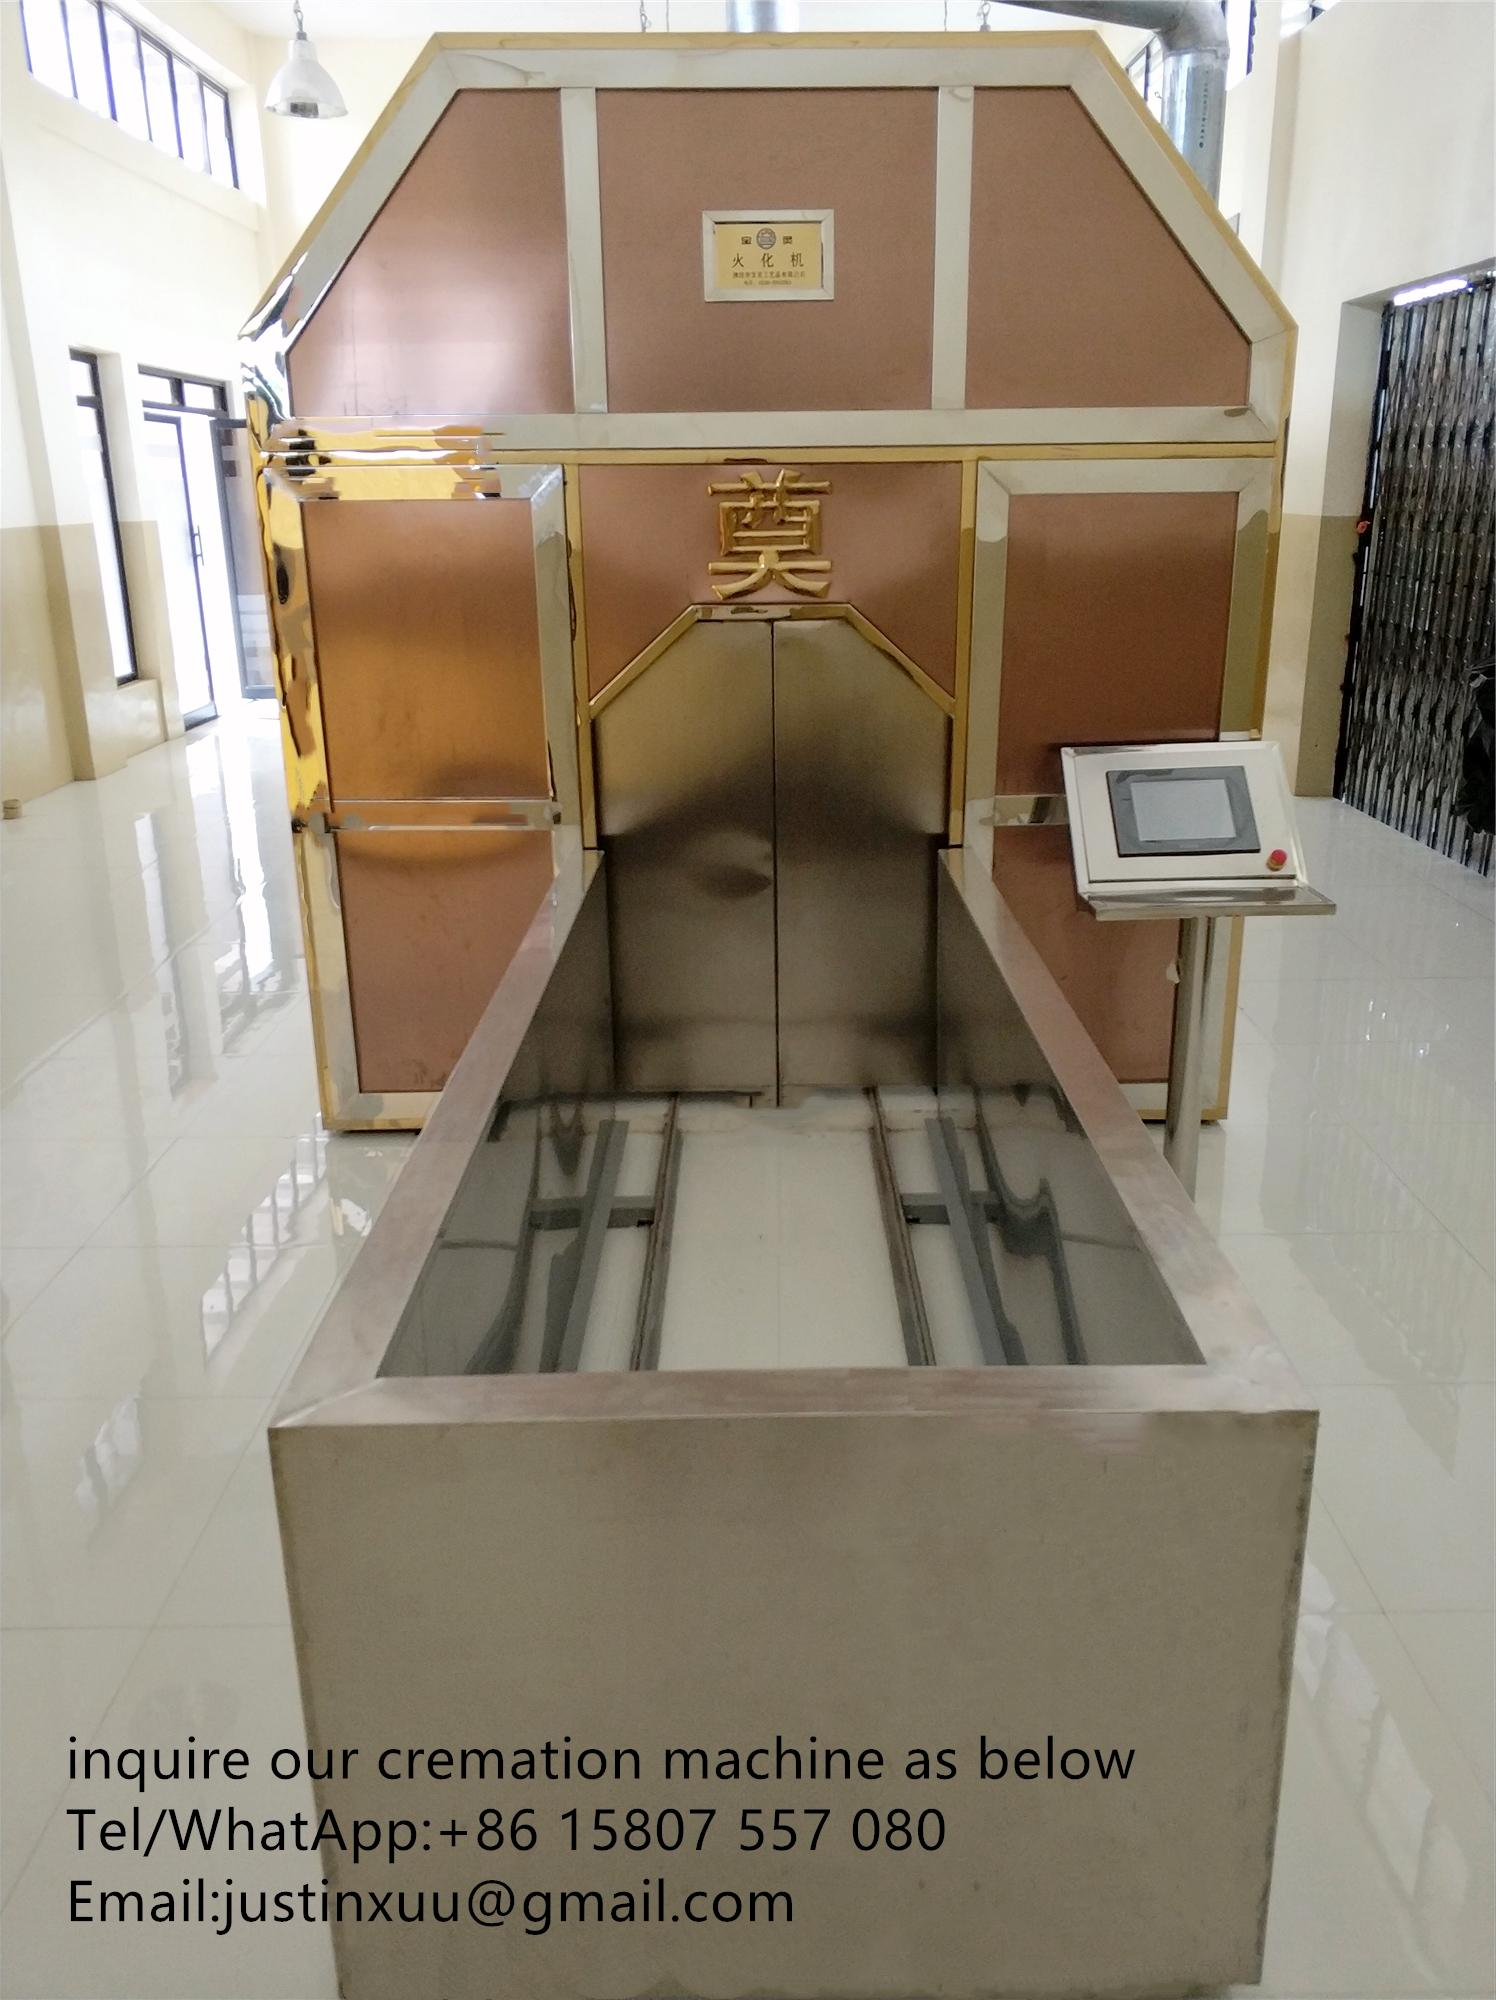 Sell incinerator container for cremation designed human for South Africa market  5